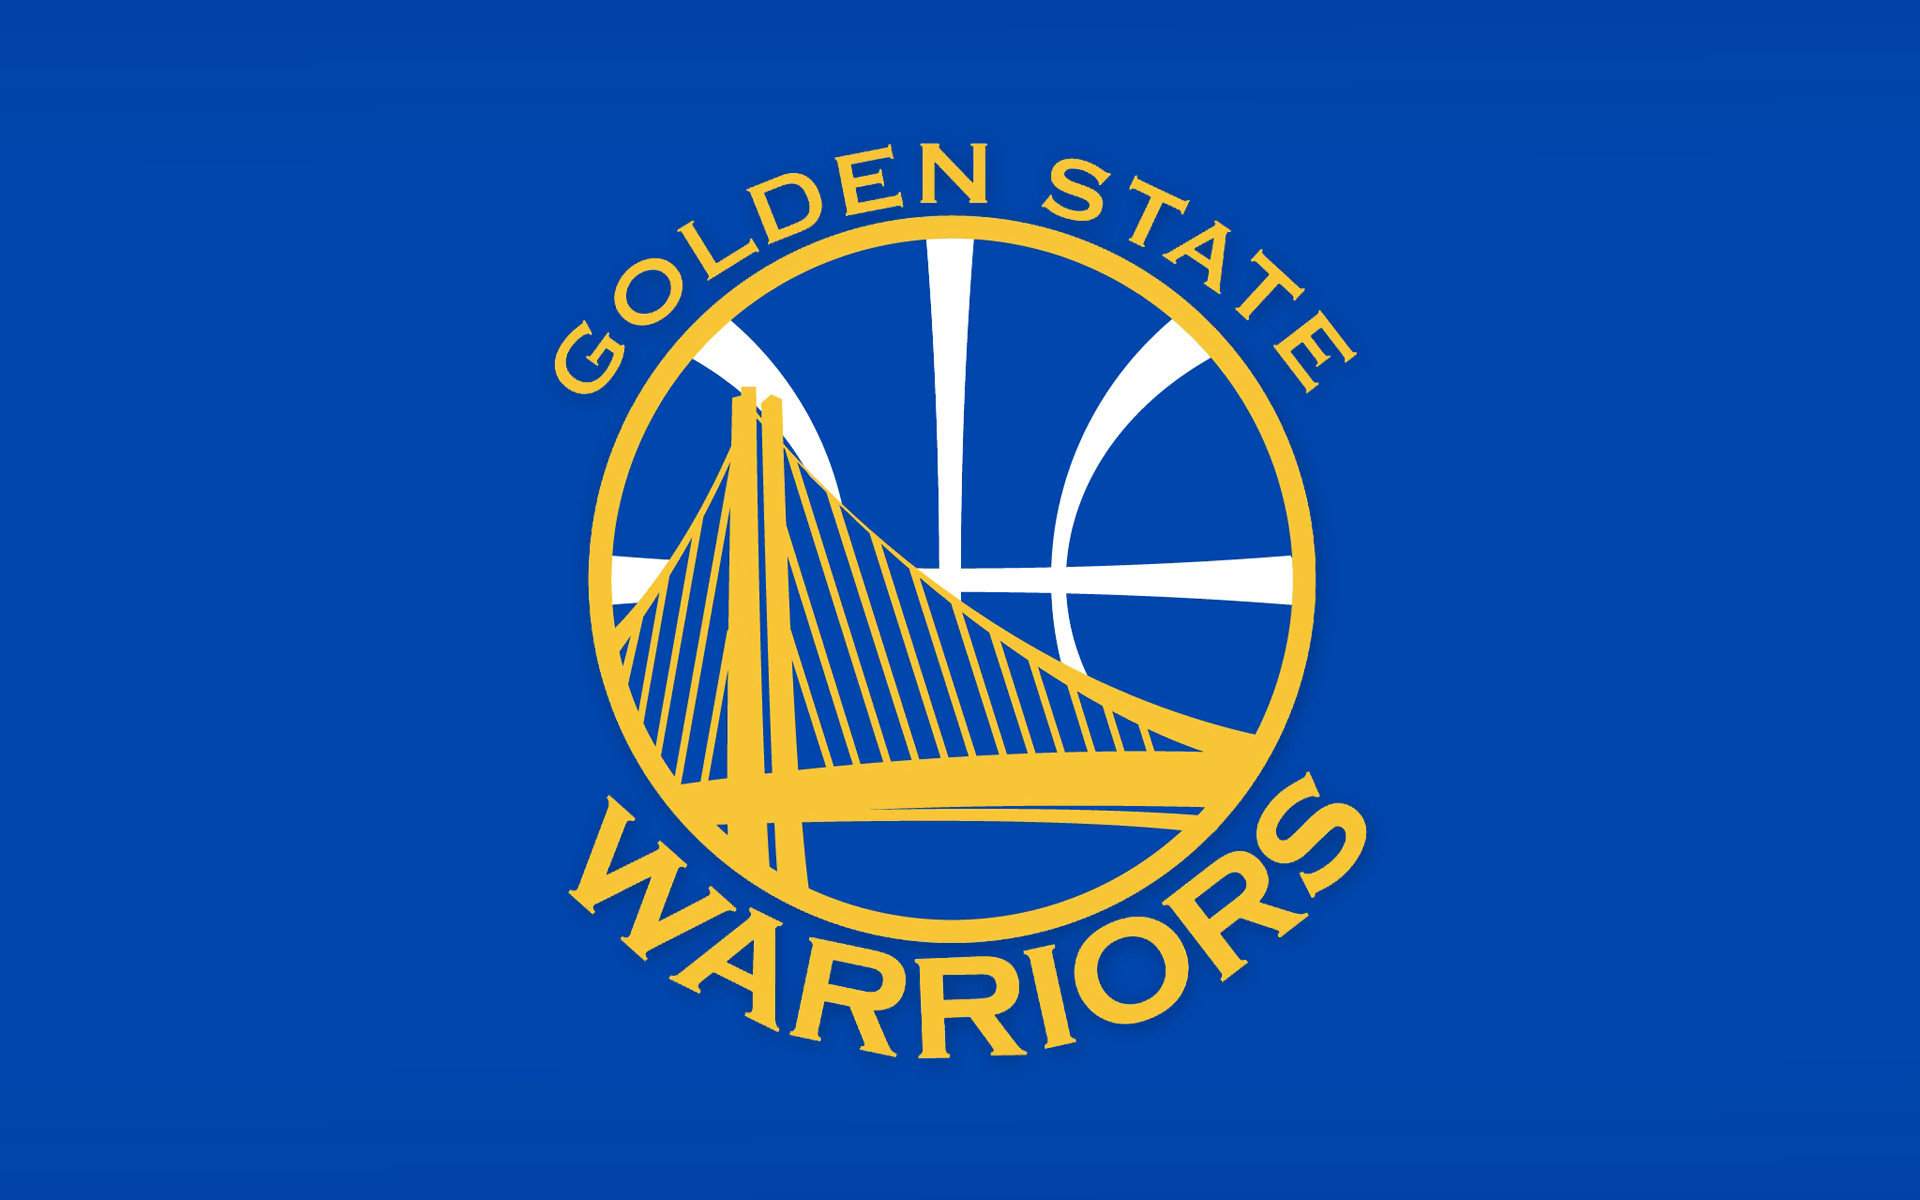 Awesome Golden State Warriors free wallpaper ID:470665 for hd 1920x1200 computer